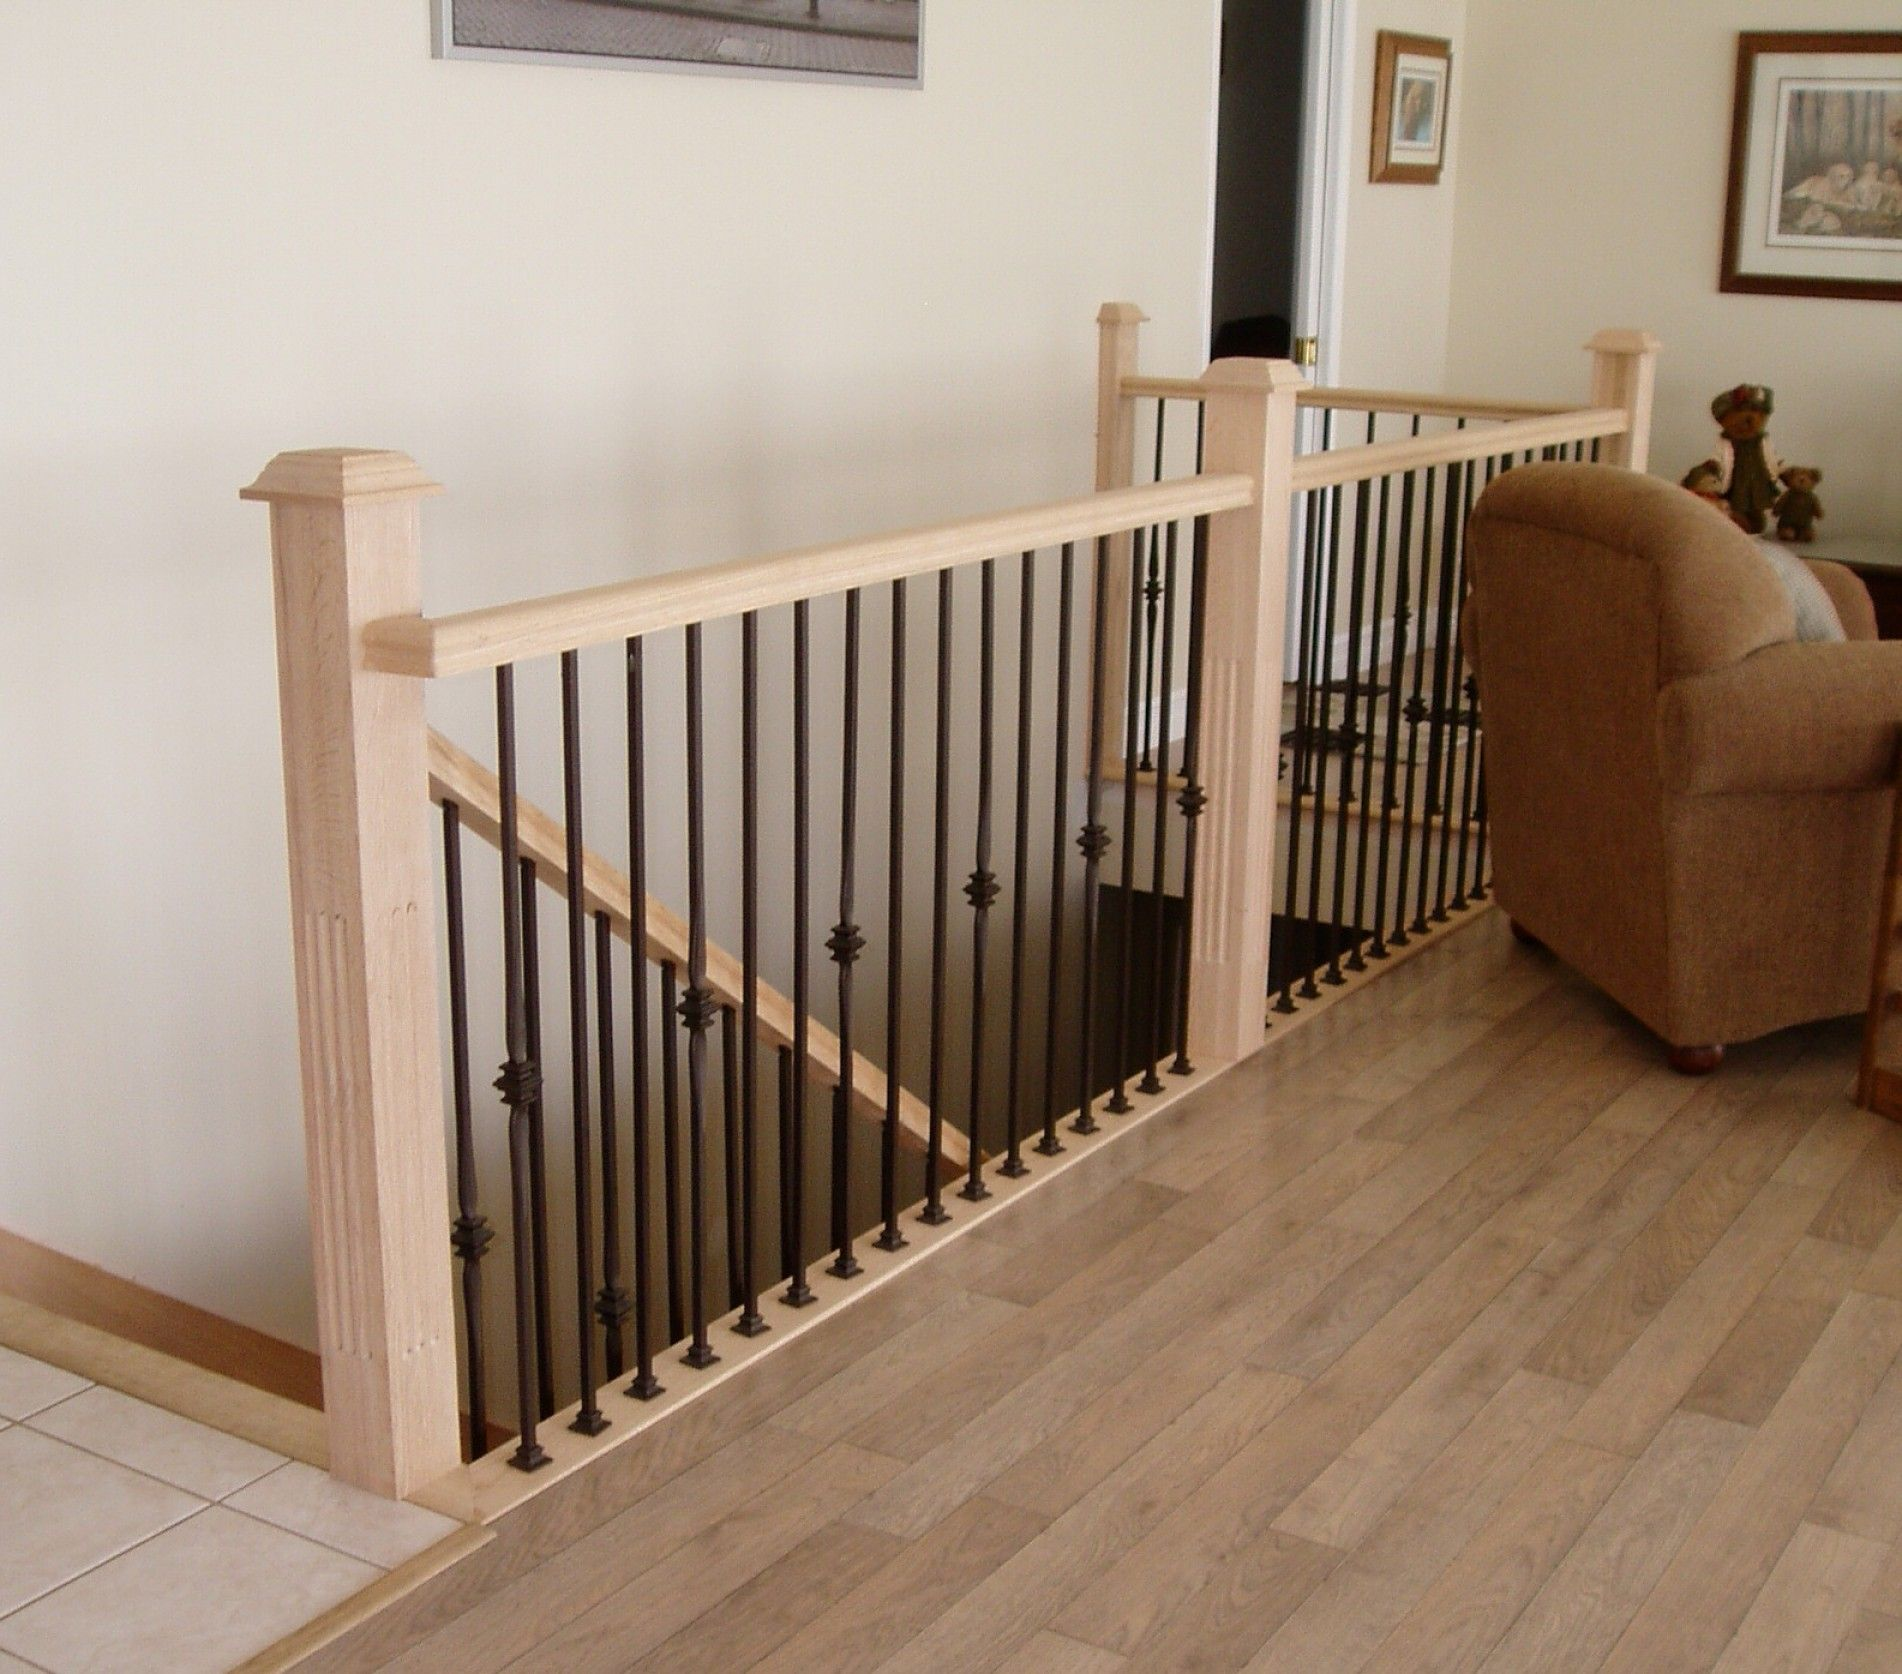 Interior Stair Railing Kits Inspiration And Design Wood Home Brown Wooden Stack Loft